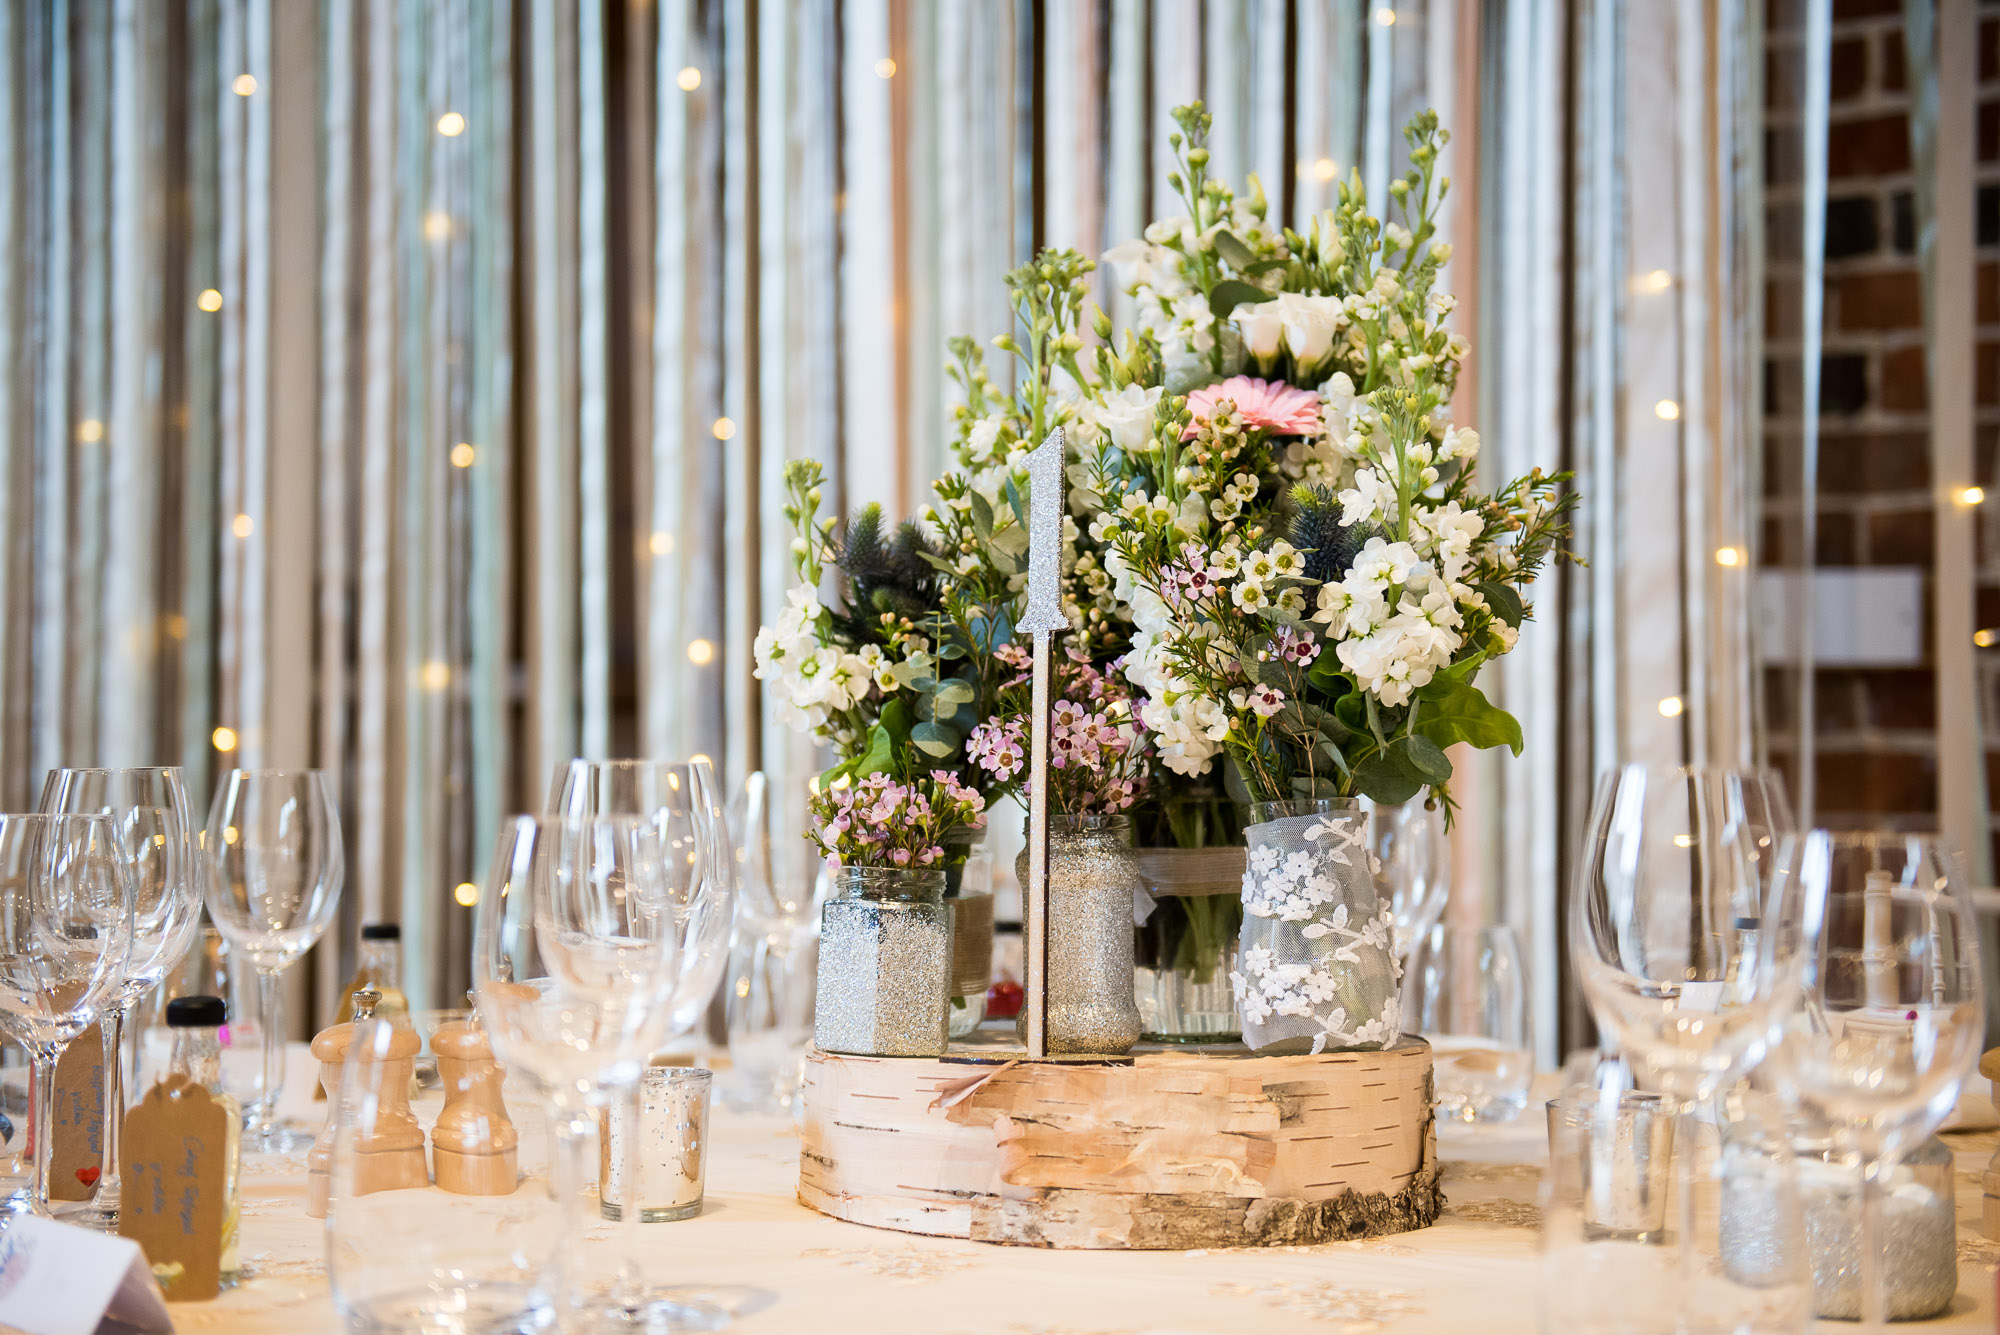 table decoration with rustic tones